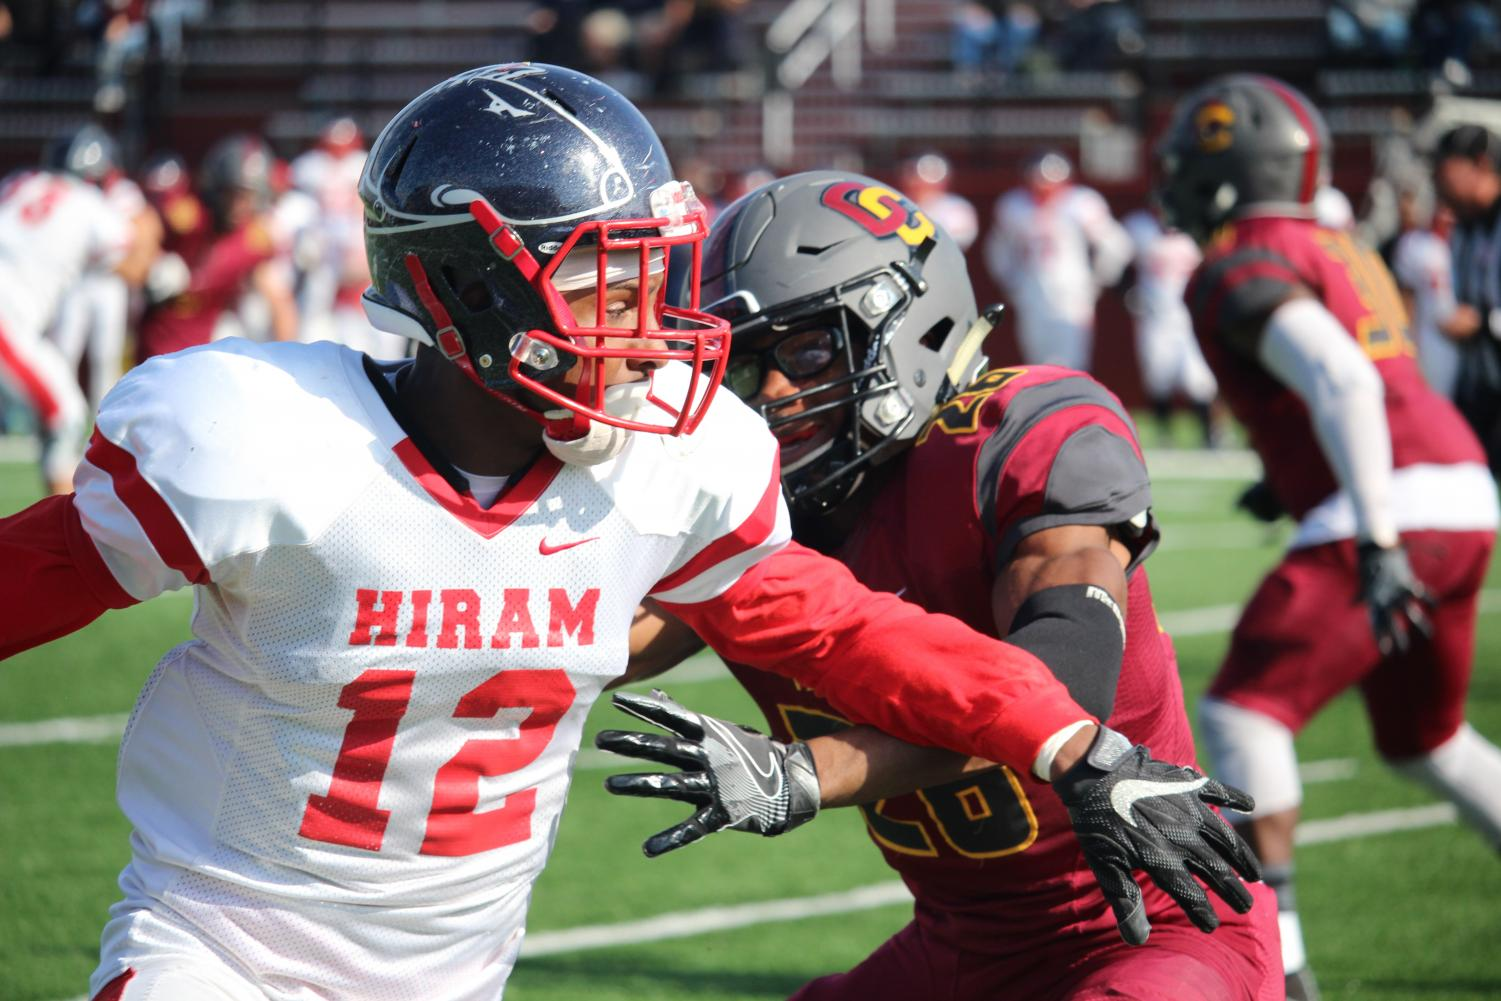 Sophomore defensive back Jubreel Hason plays tight coverage against the Hiram College Terriers receiver last Saturday in their 27–14 win